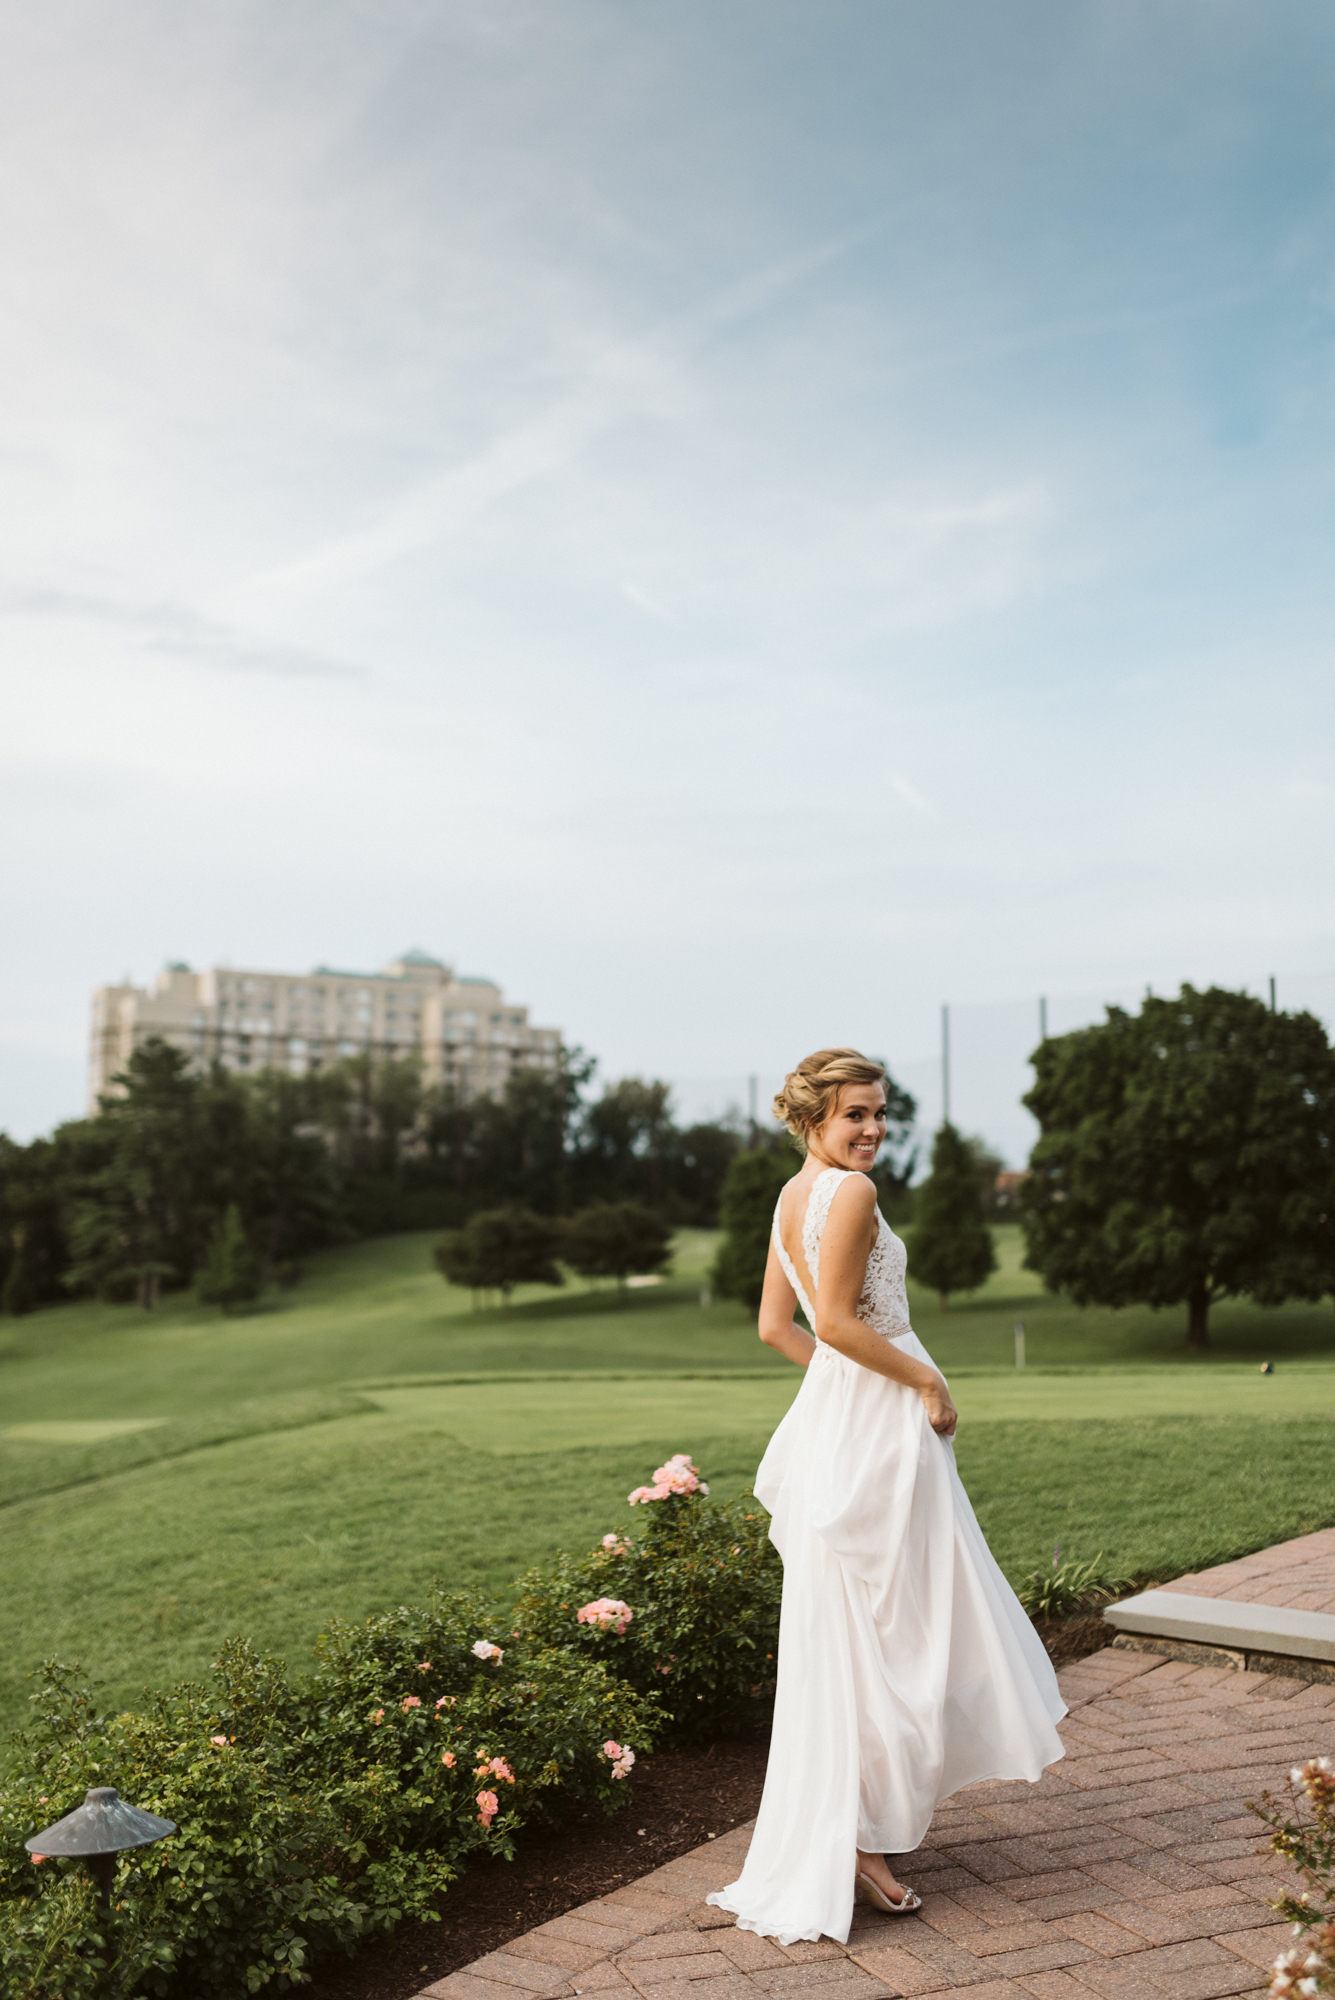 Elegant, Columbia Country Club, Chevy Chase Maryland, Baltimore Wedding Photographer, Classic, Traditional, Beautiful Bride Walking Down Path at Sunset, BHLDN Wedding Dress